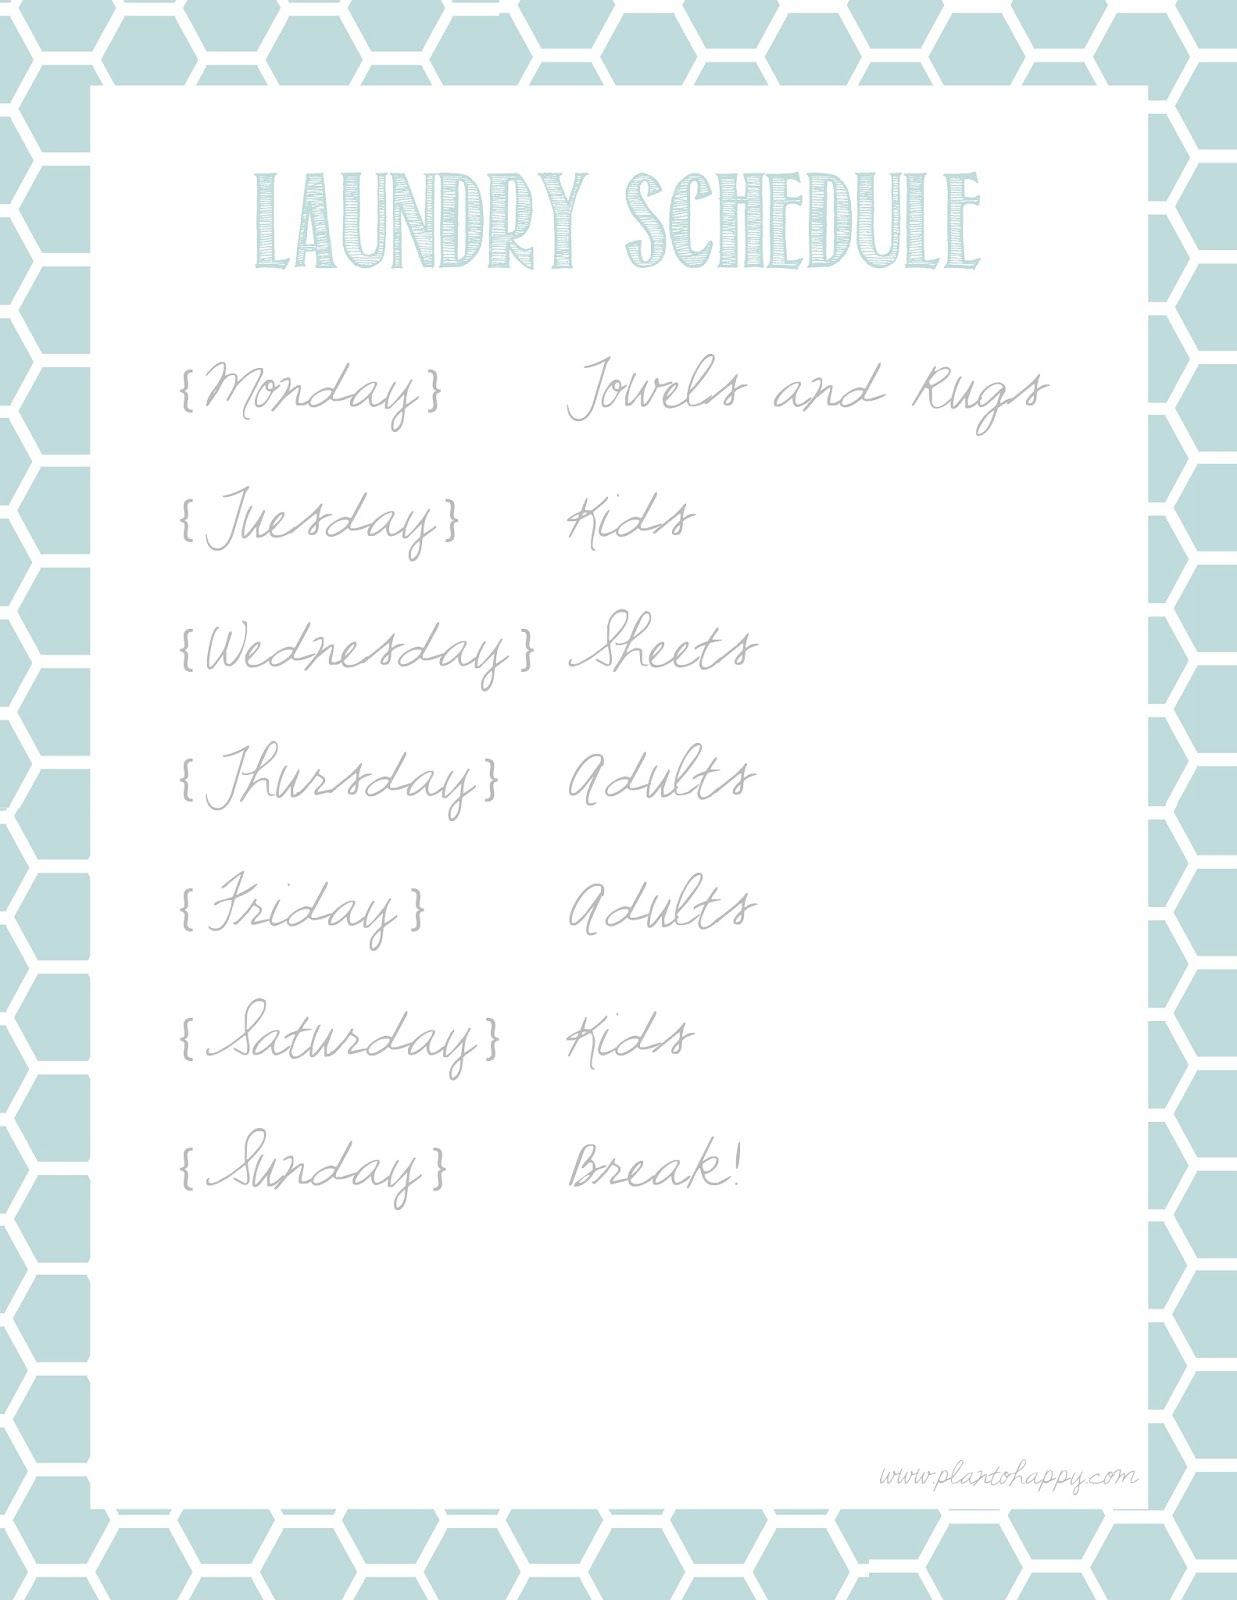 5 best images of laundry schedule printable printable laundry schedule template free. Black Bedroom Furniture Sets. Home Design Ideas